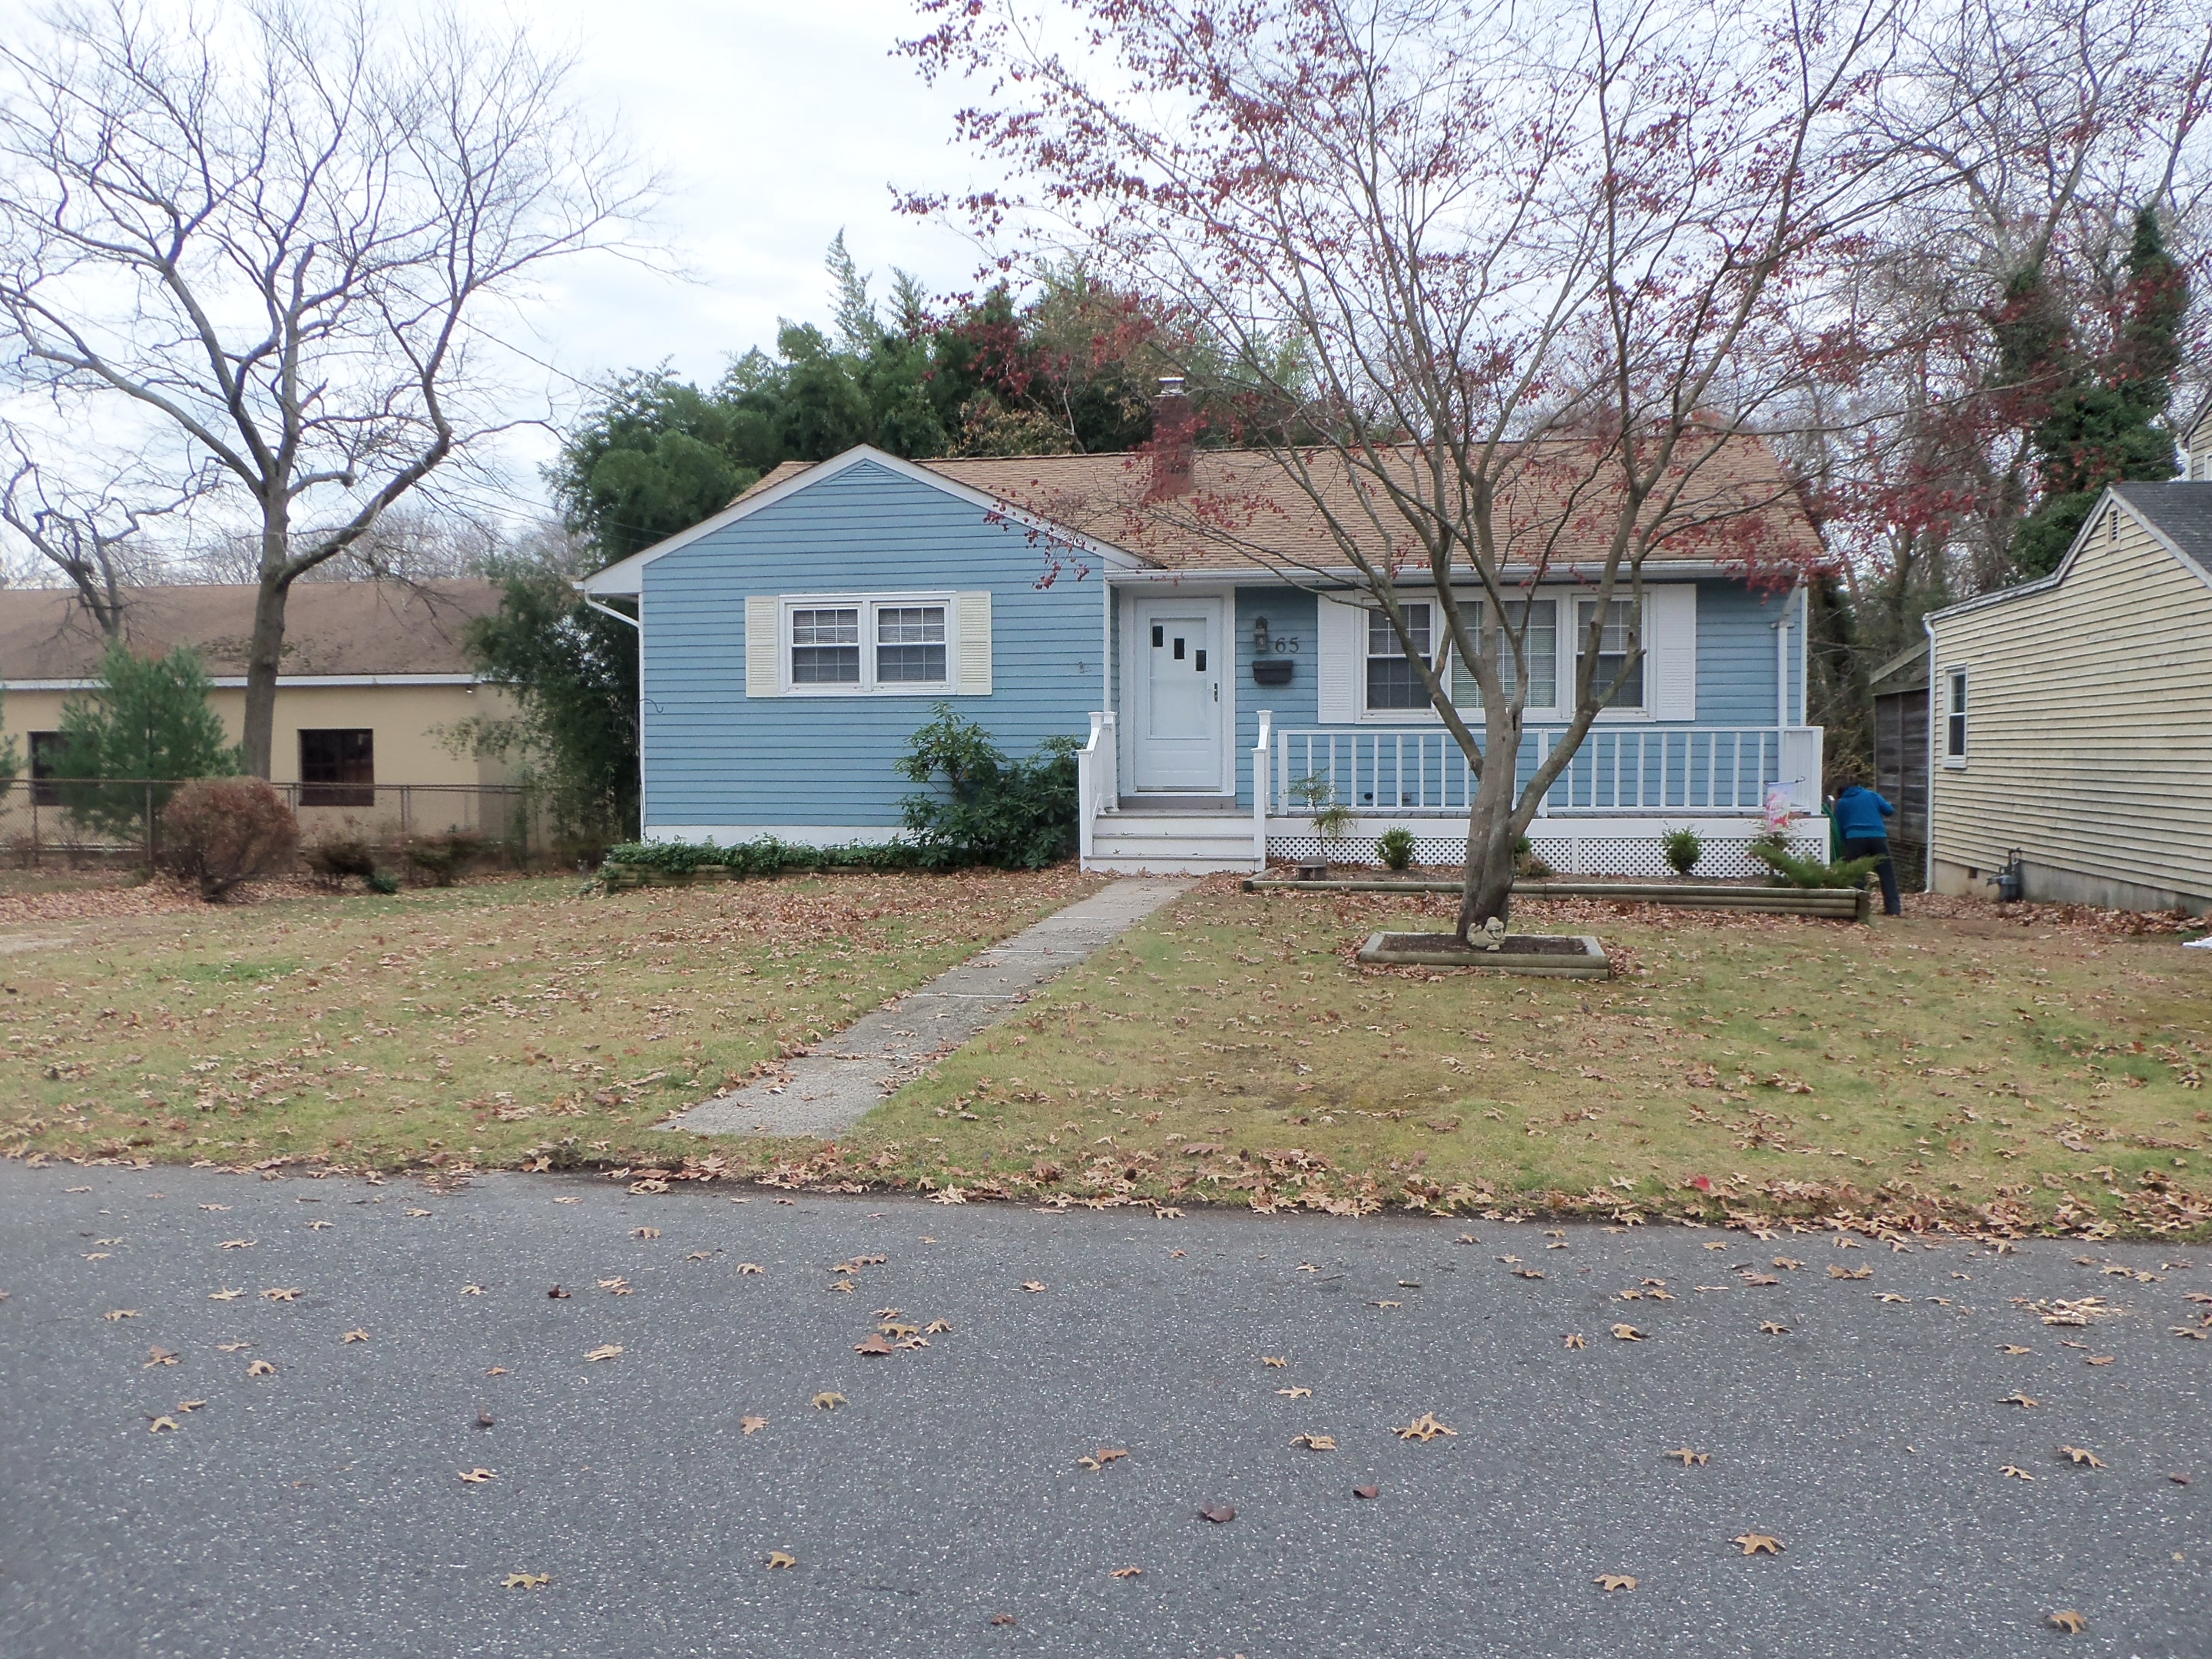 Single Family Home for Sale at Great Opportunity in Manasquan 65 Manito Rd Manasquan, New Jersey 07719 United States